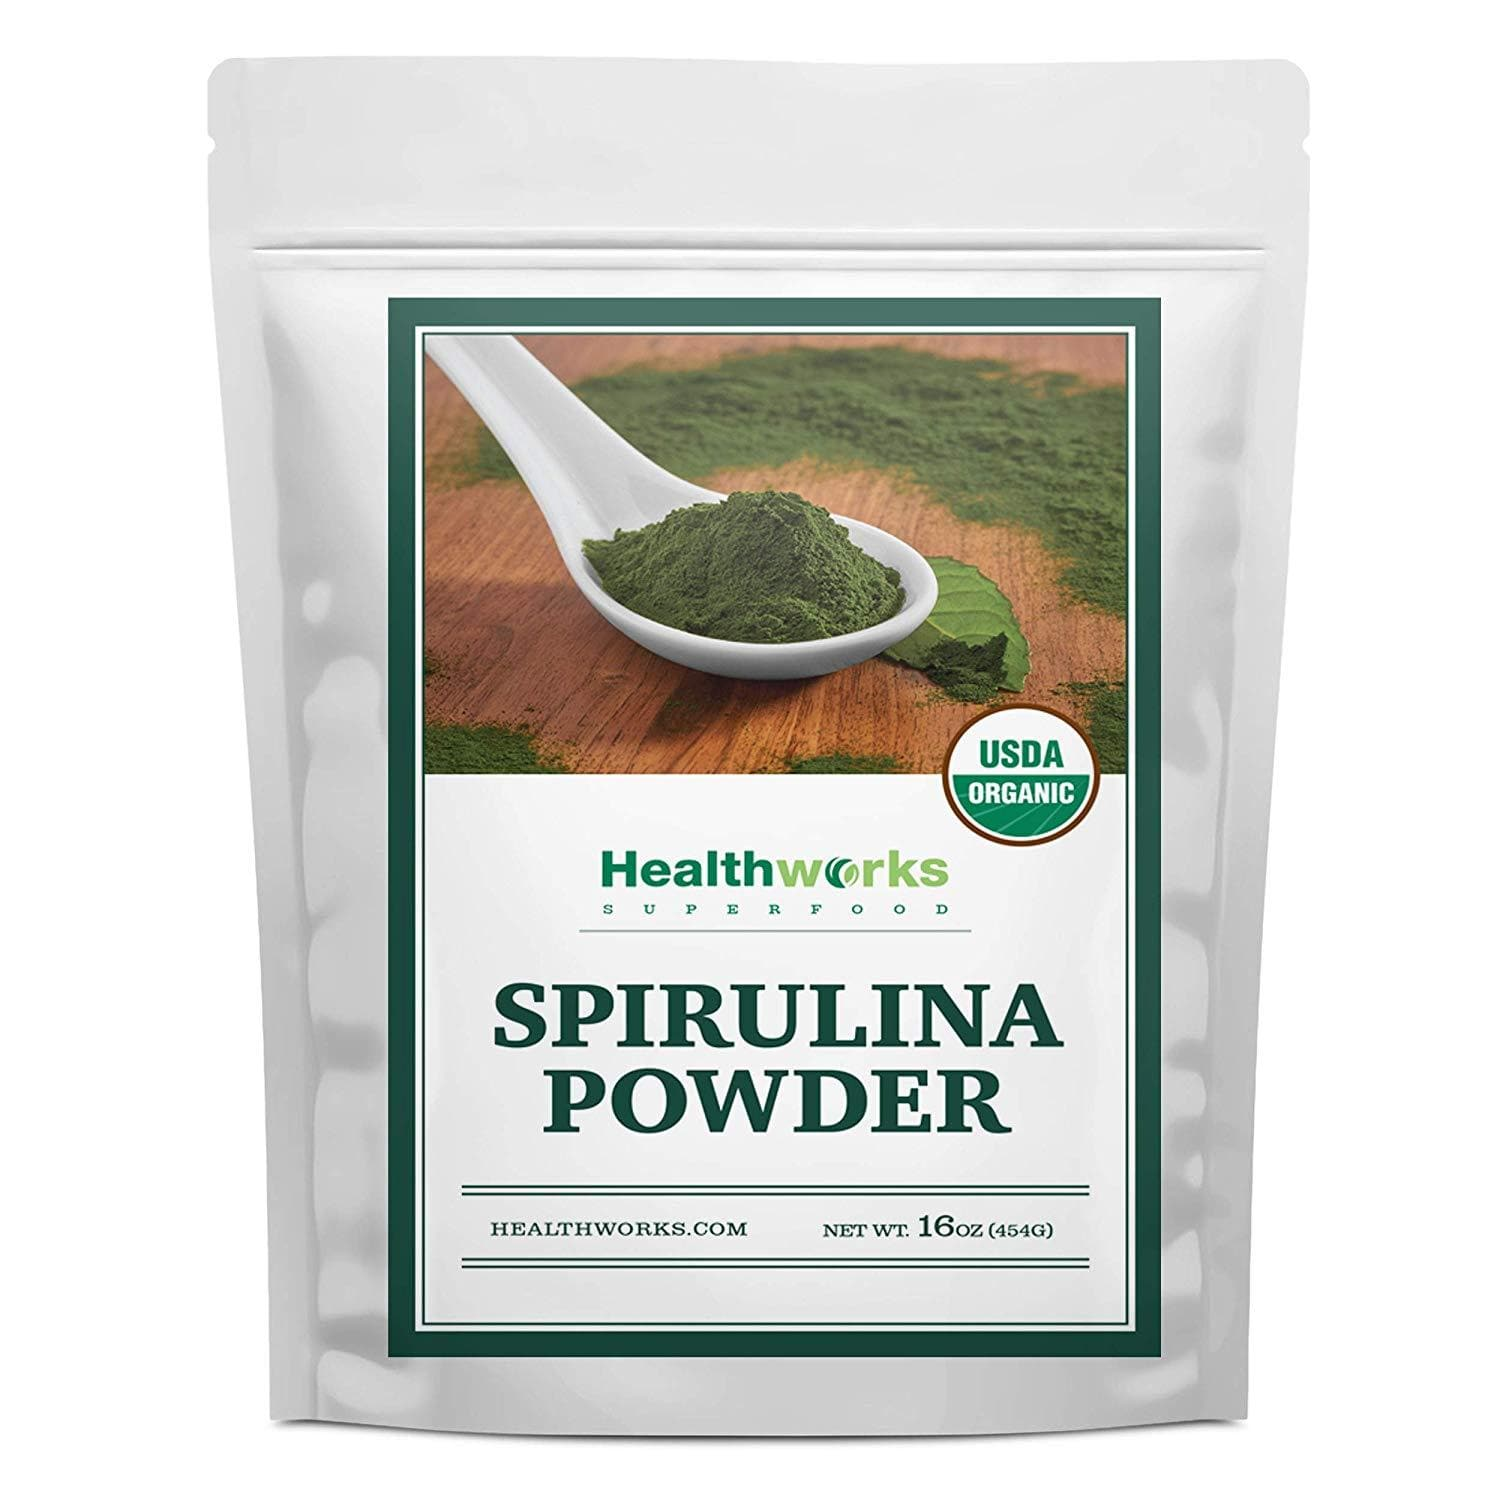 Healthworks Organic Spirulina Powder 1lb - Raw, Non-Irradiated and All-Natural - Healthworks Superfood Organic